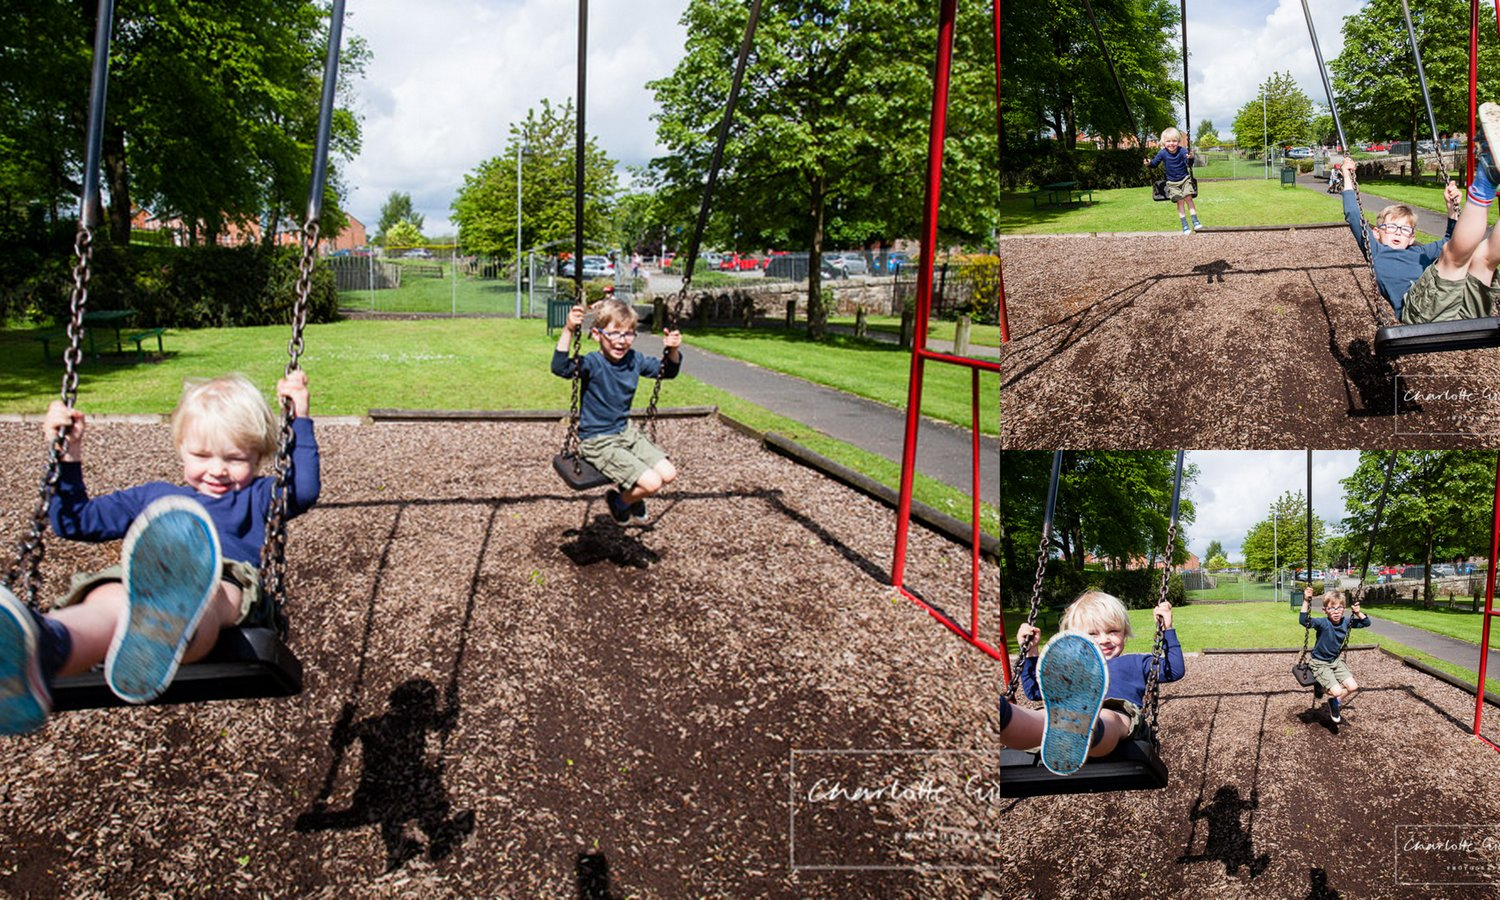 action shots of two brothers on the swings jubilee park whitchurch charlotte giddings photography